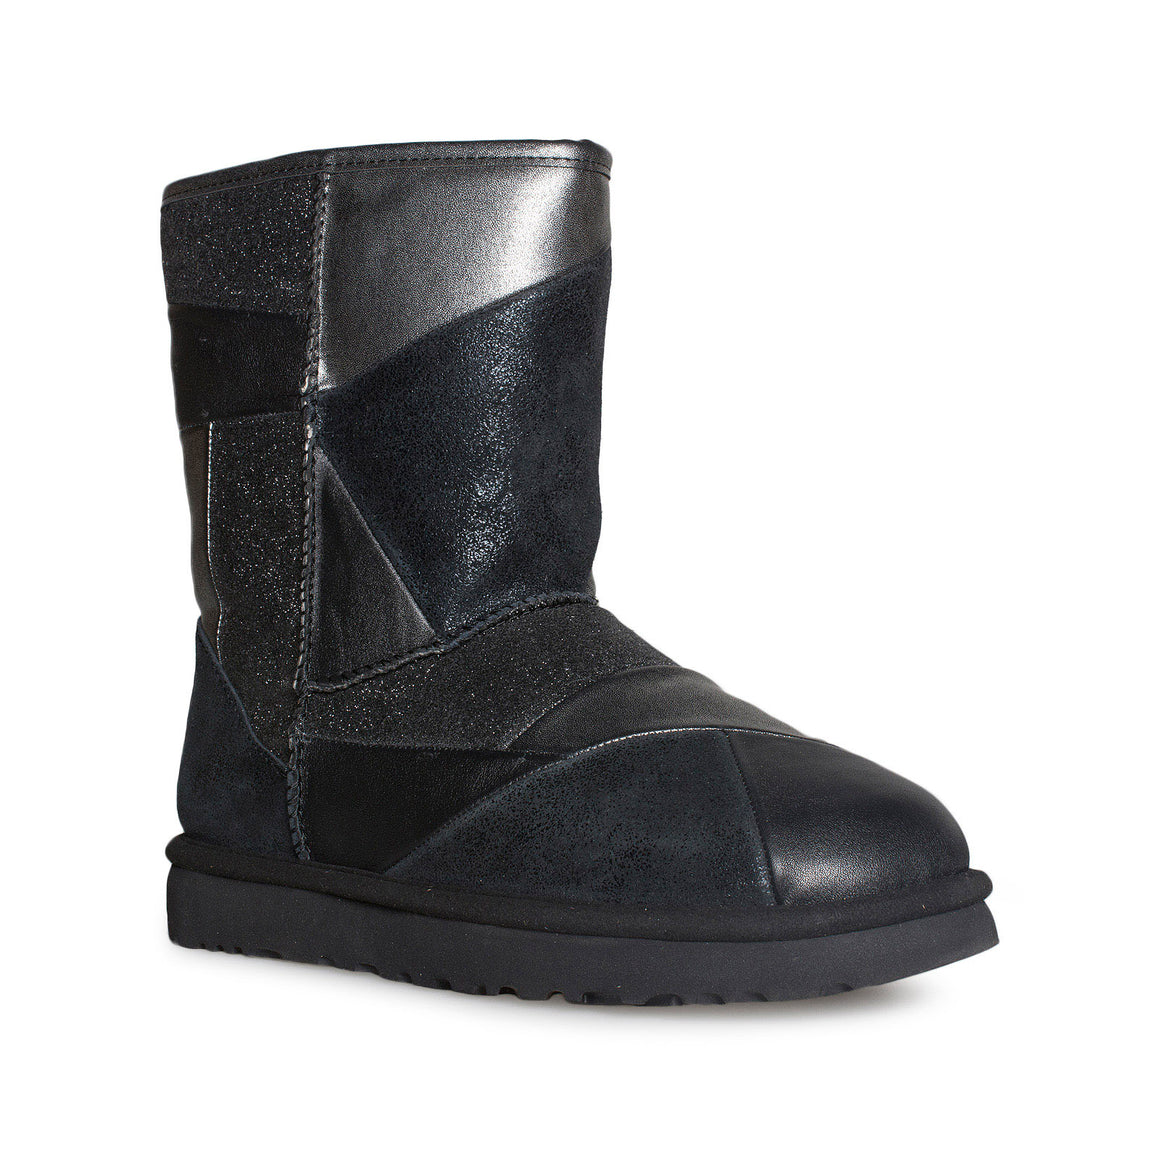 UGG Classic Glitter Patchwork Black Boots - Women's